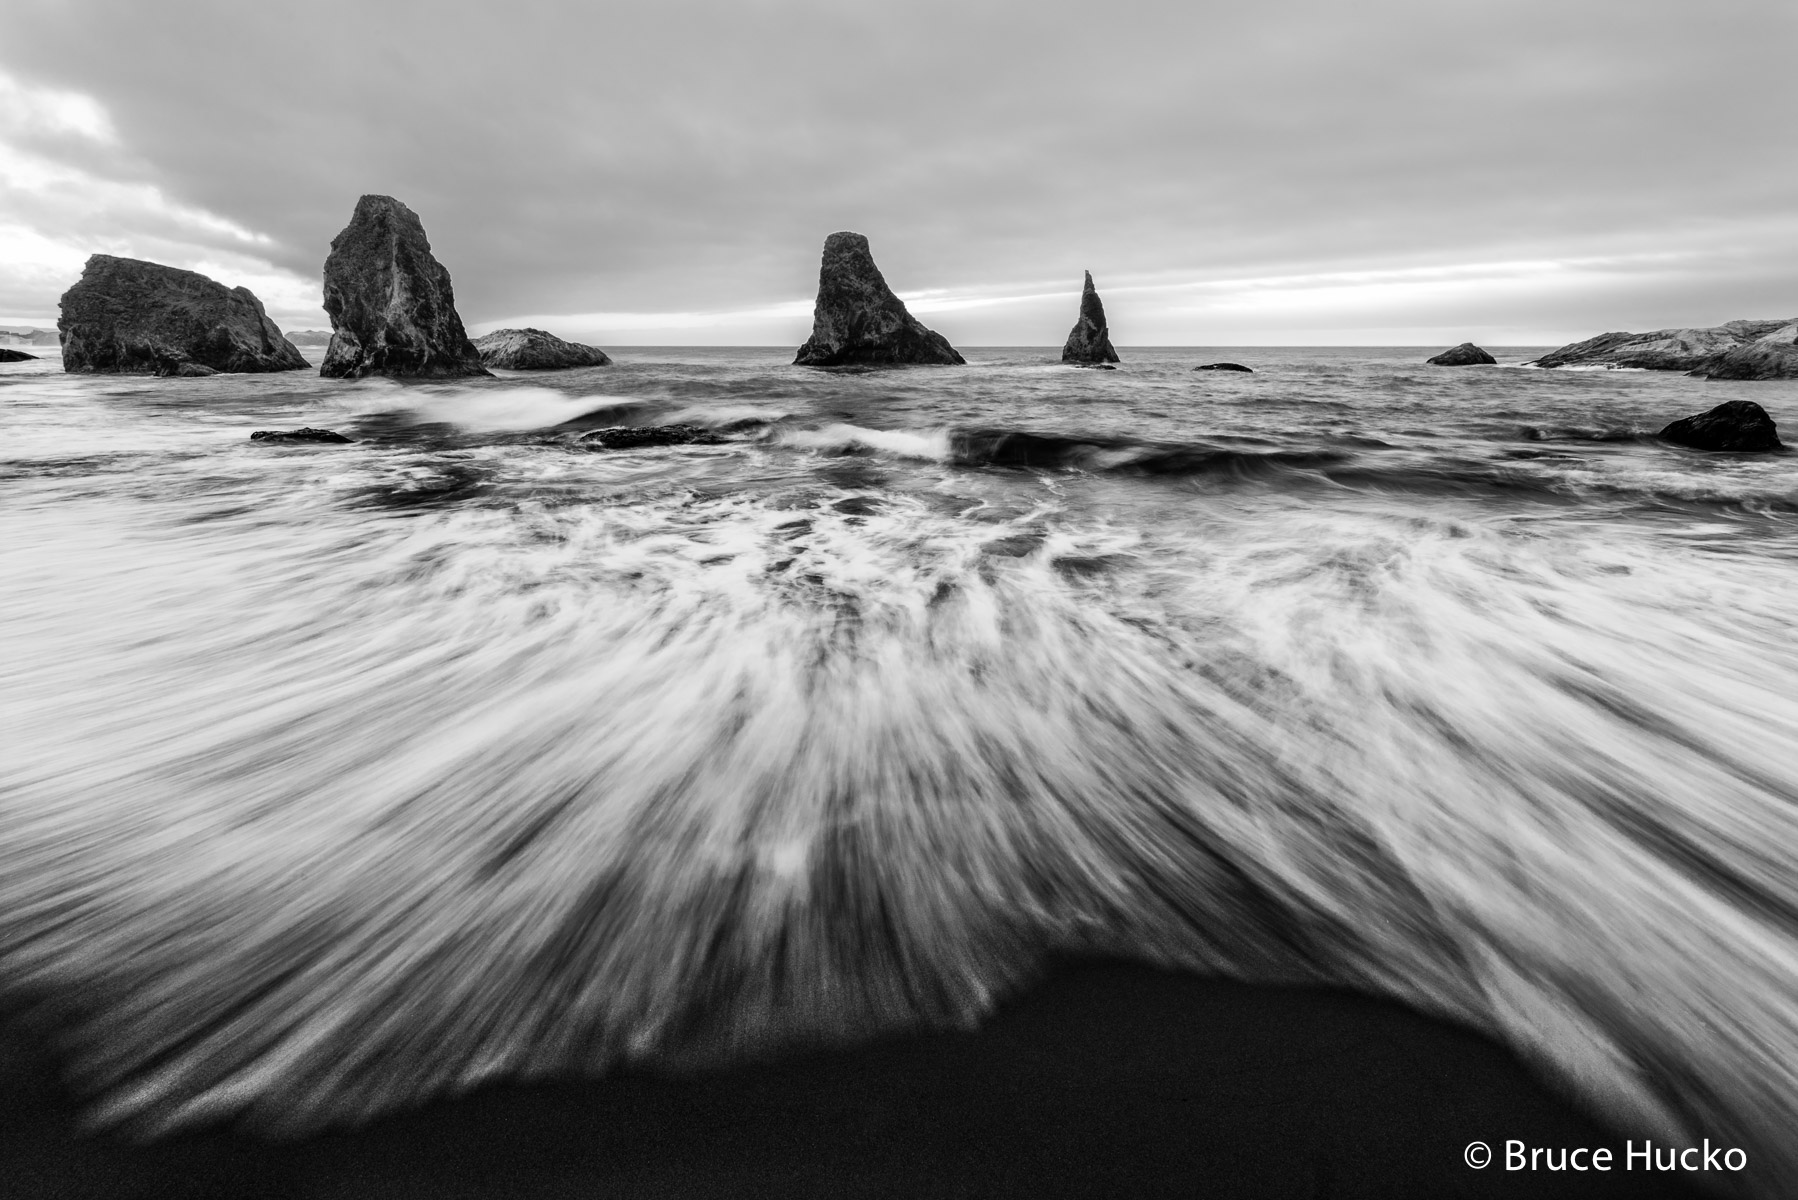 Bandon, Bandon Beach, Oregon Coast, road trip 2016, photo